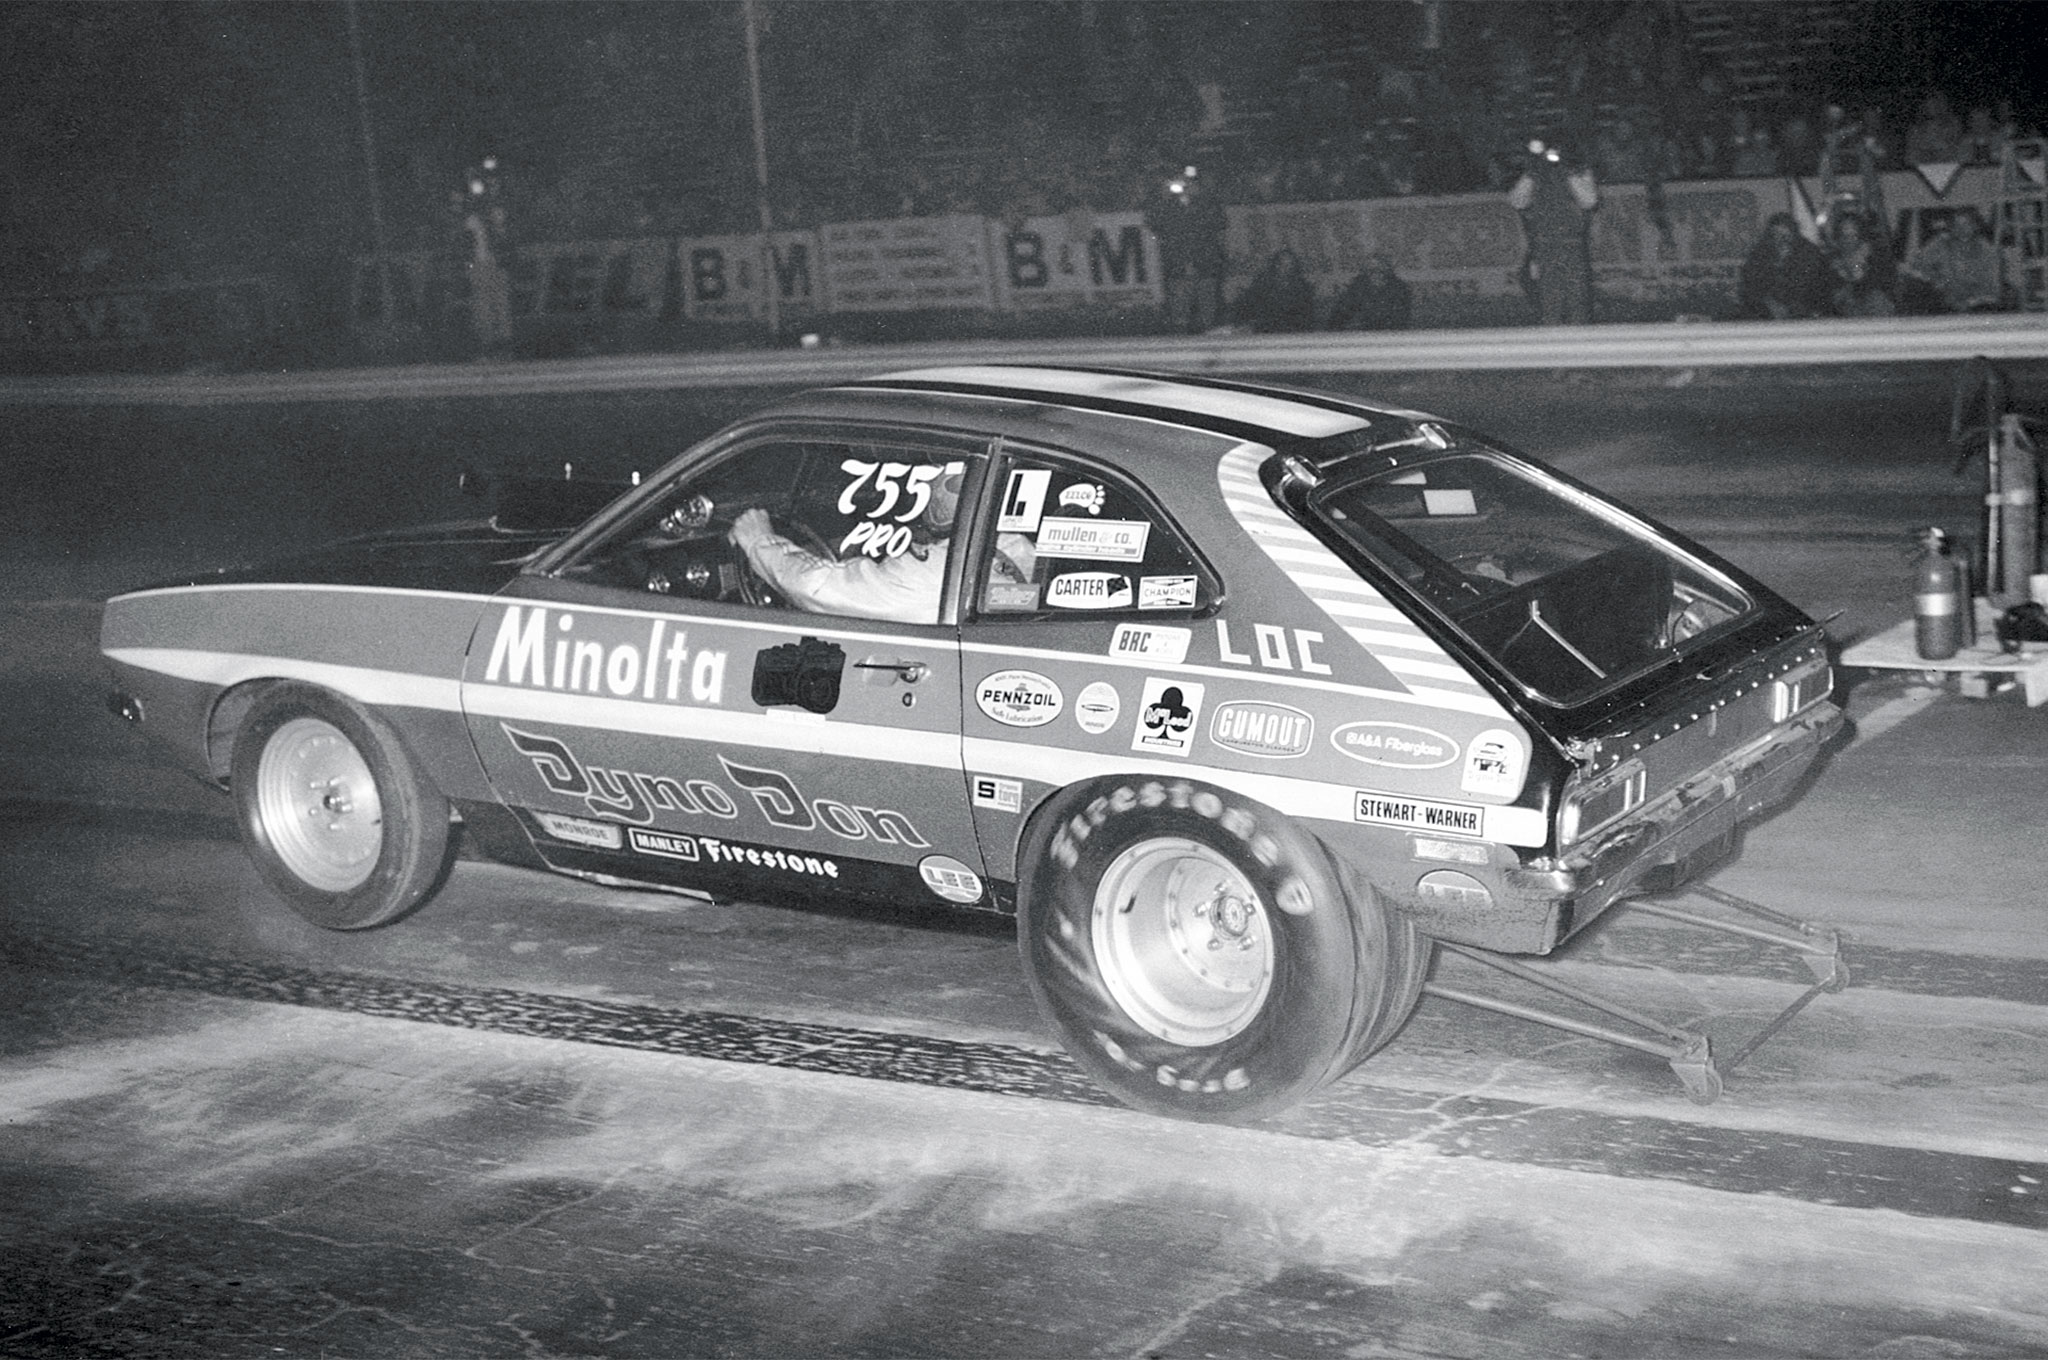 In late 1973, Car Craft's Jon Asher covered what must have been a killer West Coast match race at Irwindale, which attracted all the big Pro Stock guns. Dyno went all the way to the final, losing to Bill Bagshaw and his Redlight Bandit Mopar after running a series of 8.90s at 150-plus mph. If you have a stack of old, musty Car Crafts underneath your bed, you'll find the story in the Feb. 1974 issue.